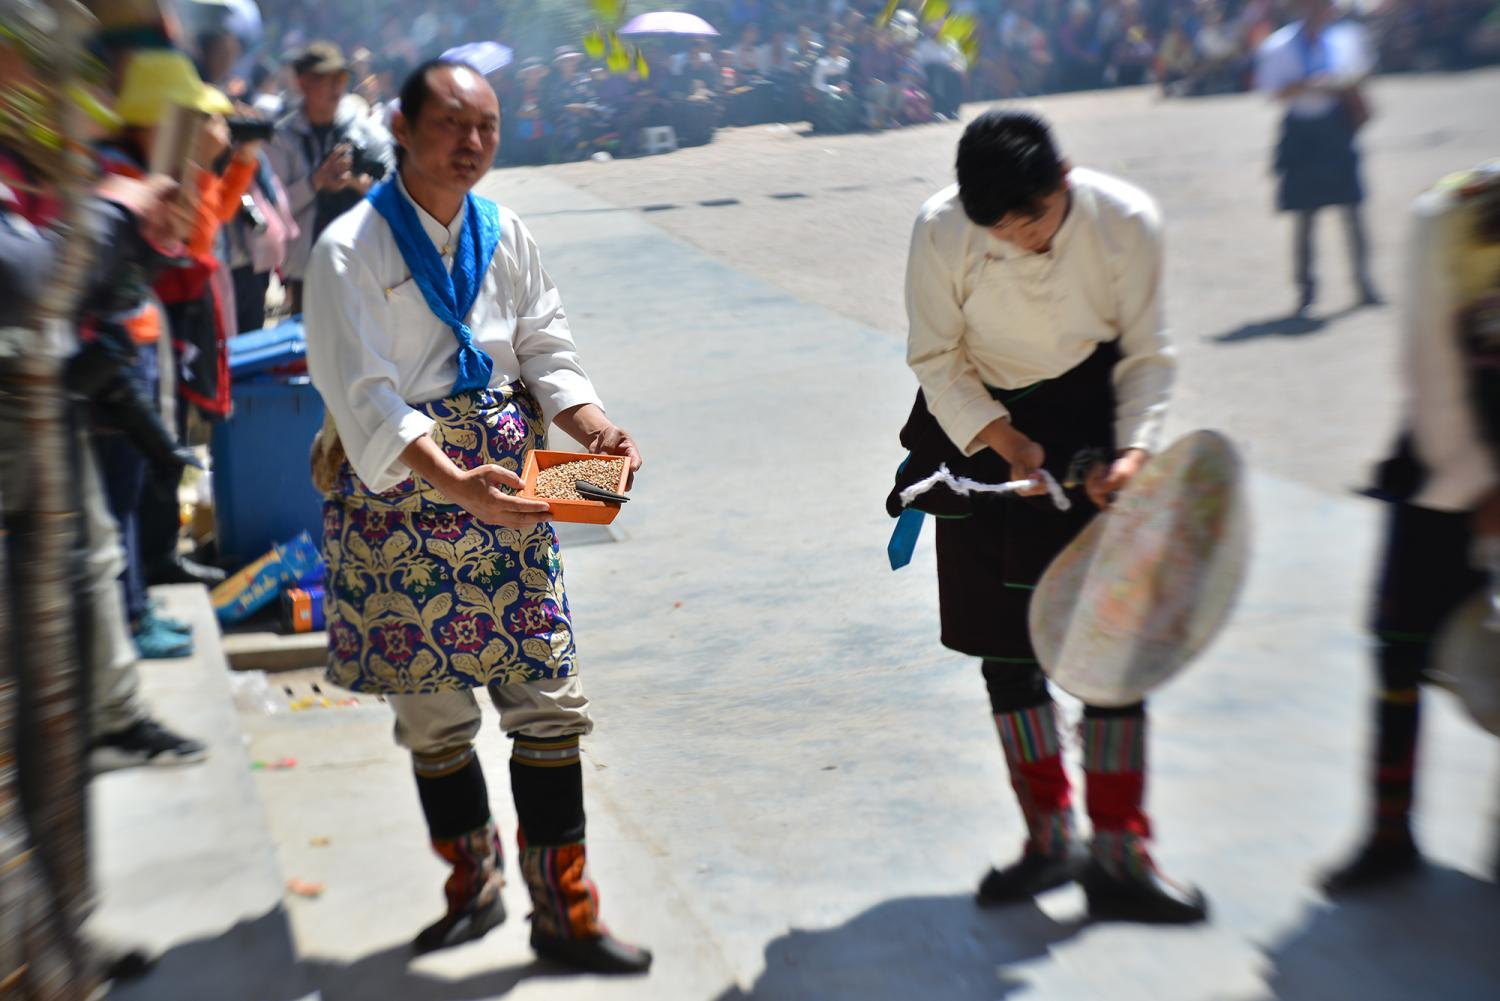 The La ba is pictured at left, holding a box of grain. He will shout and sputter his lips for the entire day as he carries out a number of ritual activities.